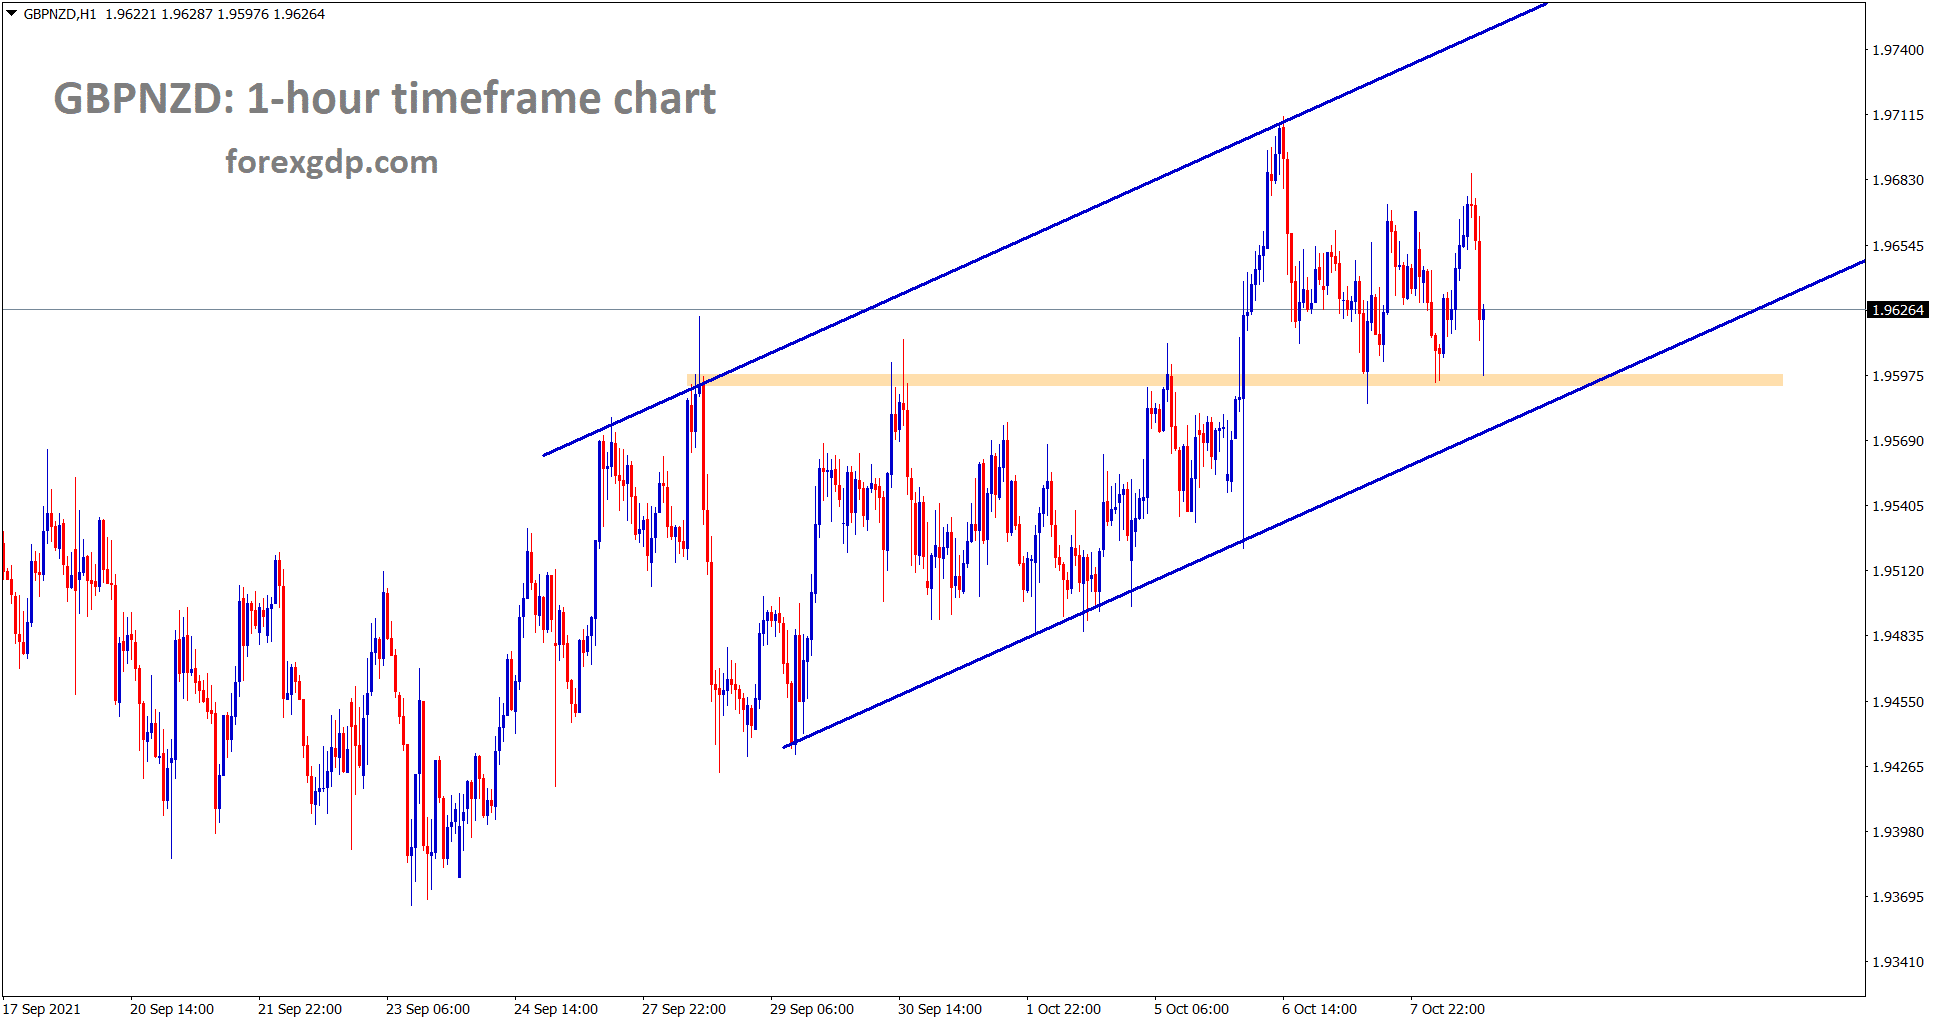 GBPNZD is moving in an Ascending channel forming higher highs and higher lows